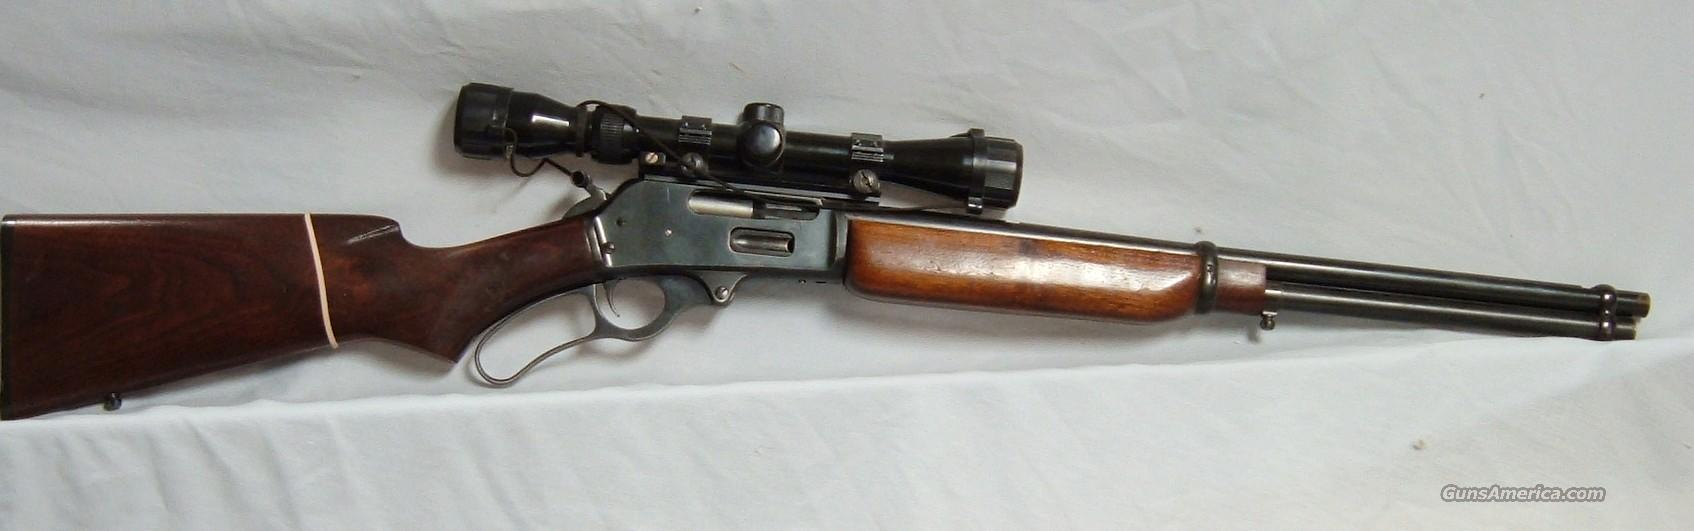 Marlin 336rc  Guns > Rifles > Marlin Rifles